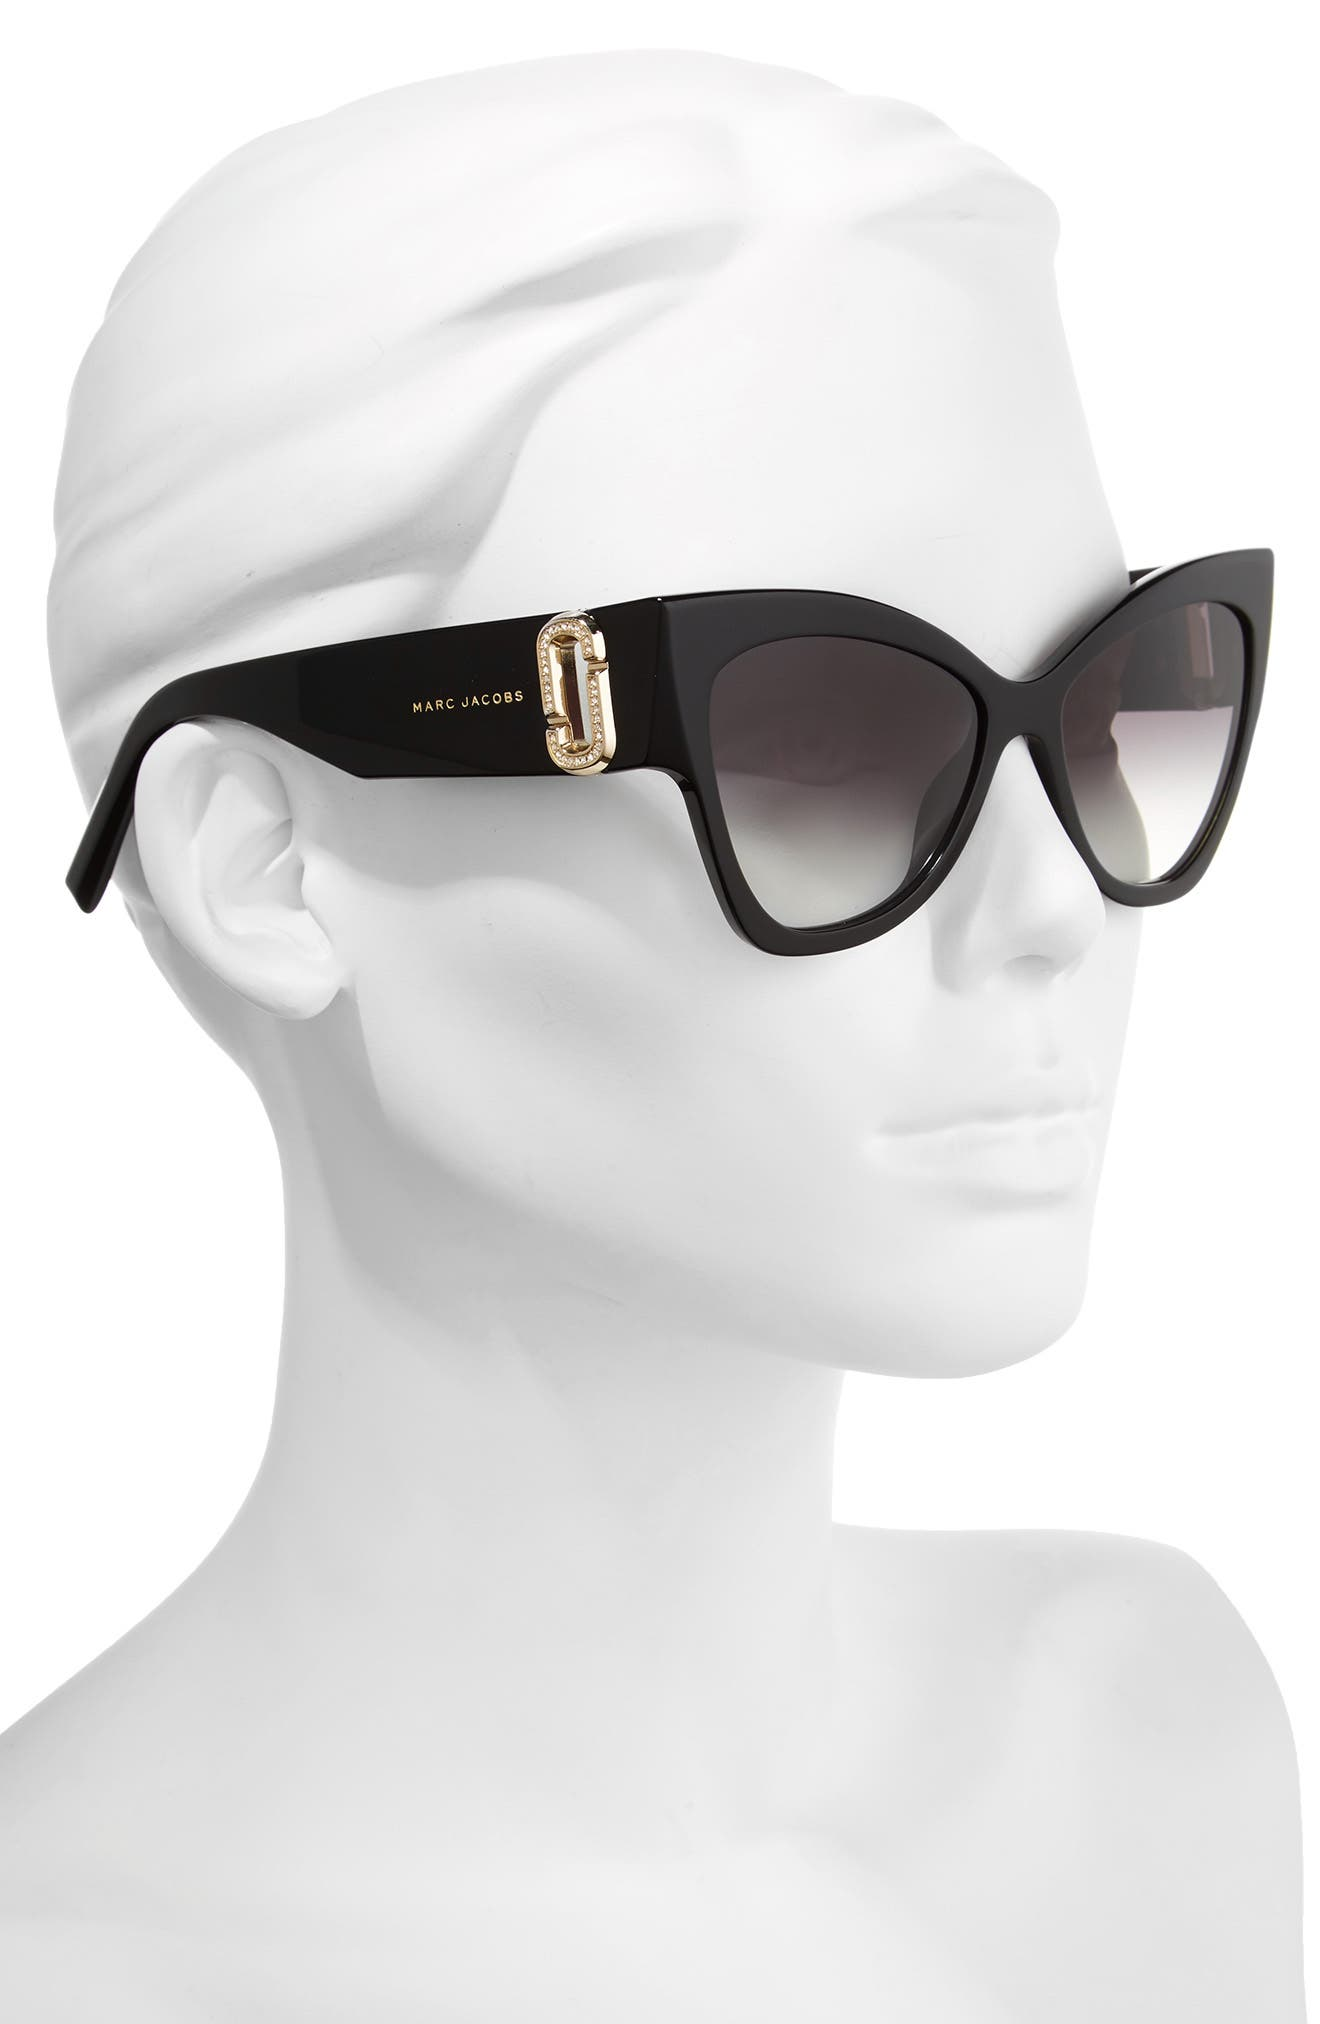 54mm Cat Eye Sunglasses,                             Alternate thumbnail 2, color,